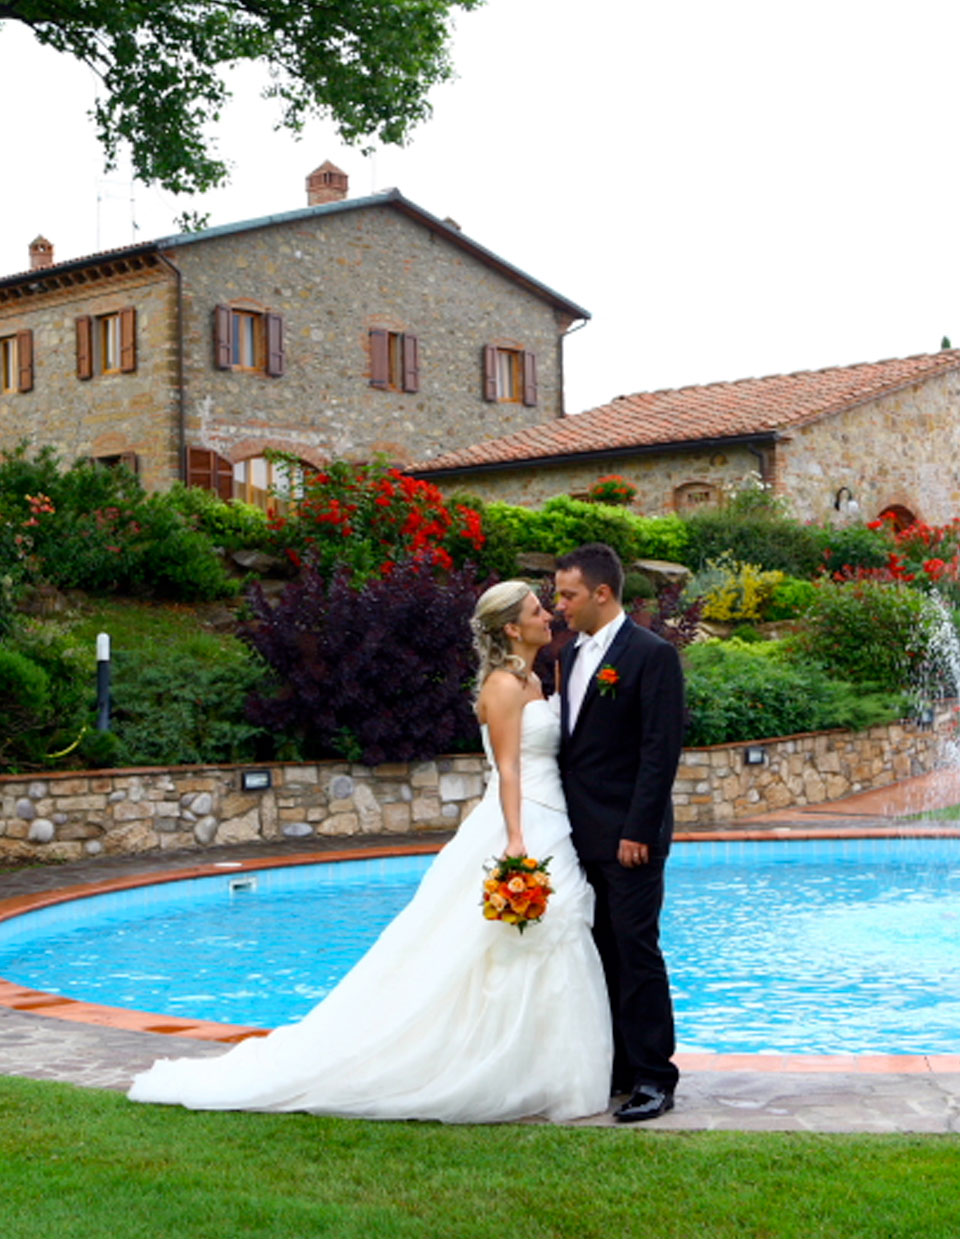 PM Video e Foto - Matrimoni in toscana - wedding Pisa